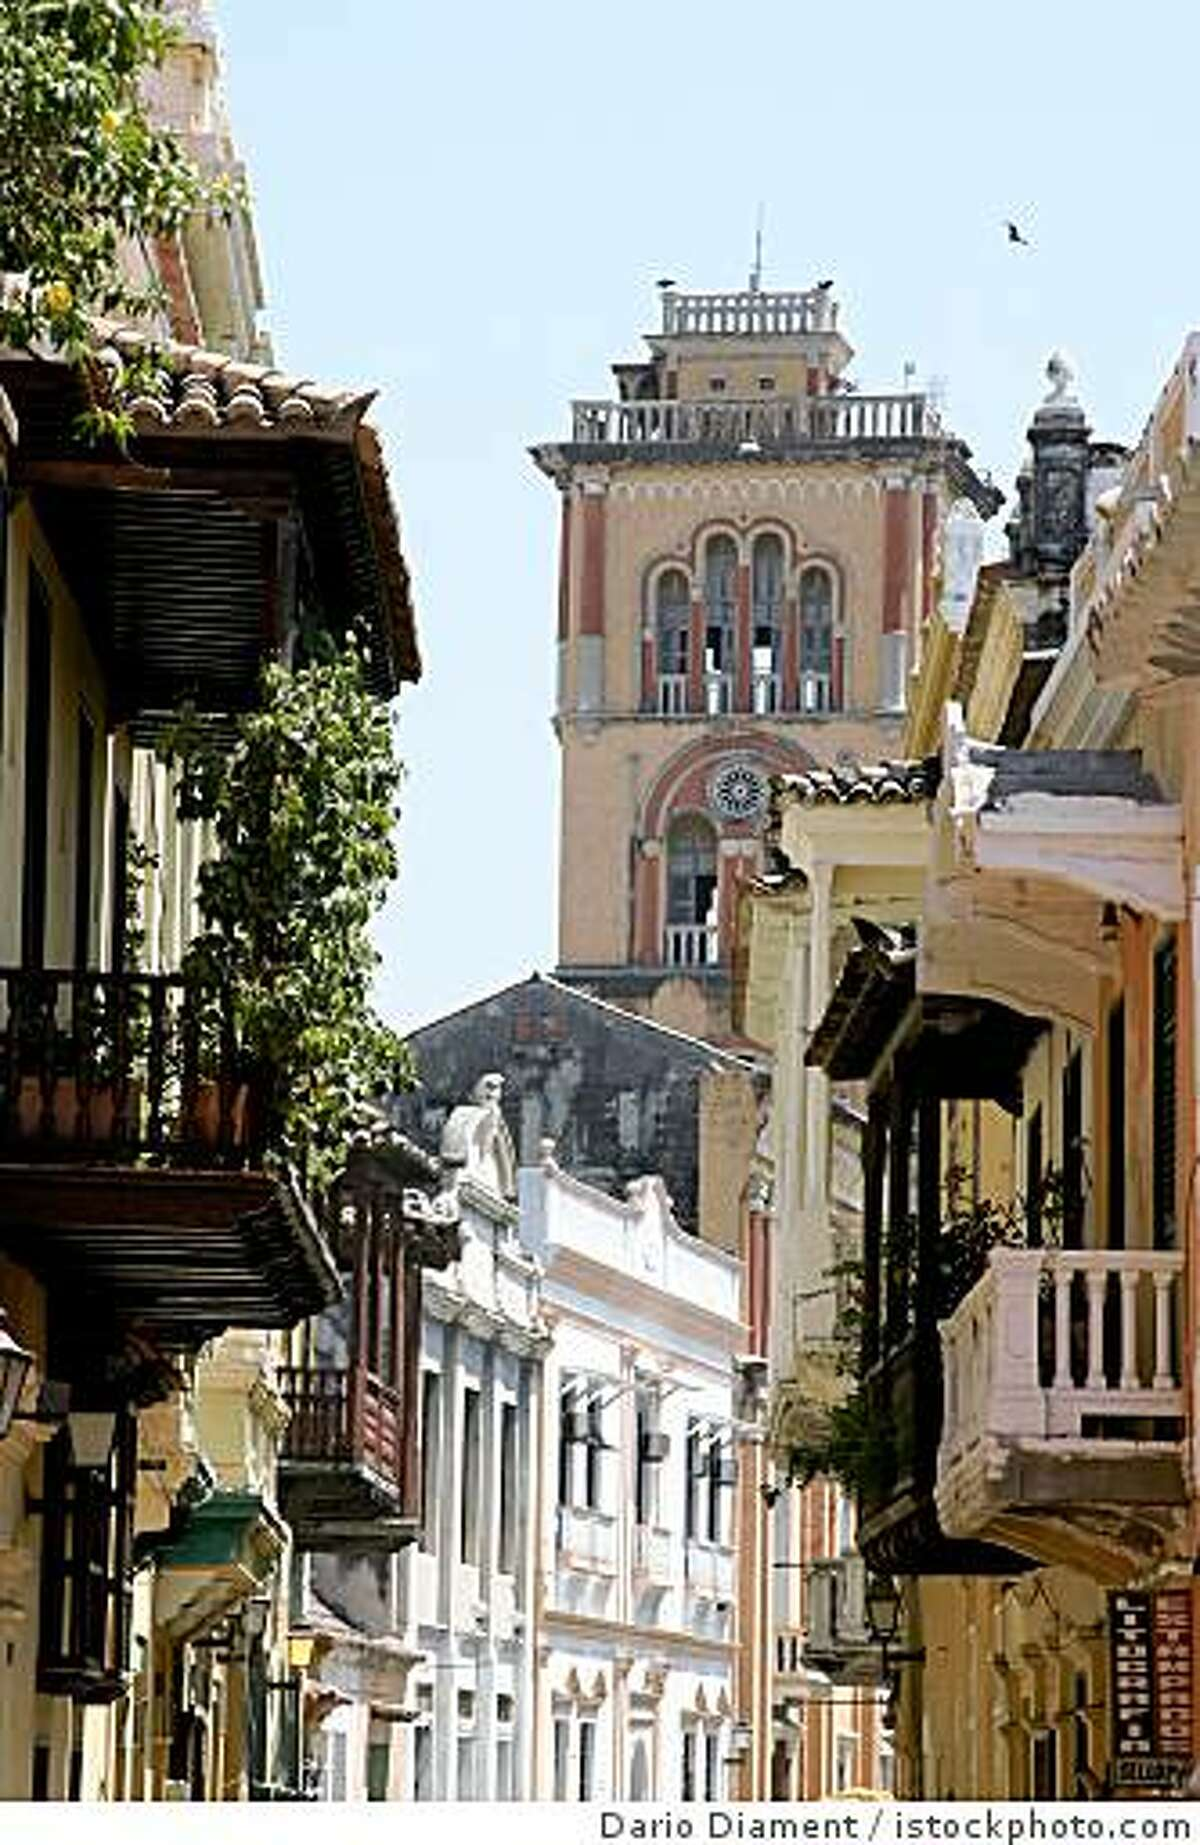 Colonial architecture in Cartagena, Colombia.